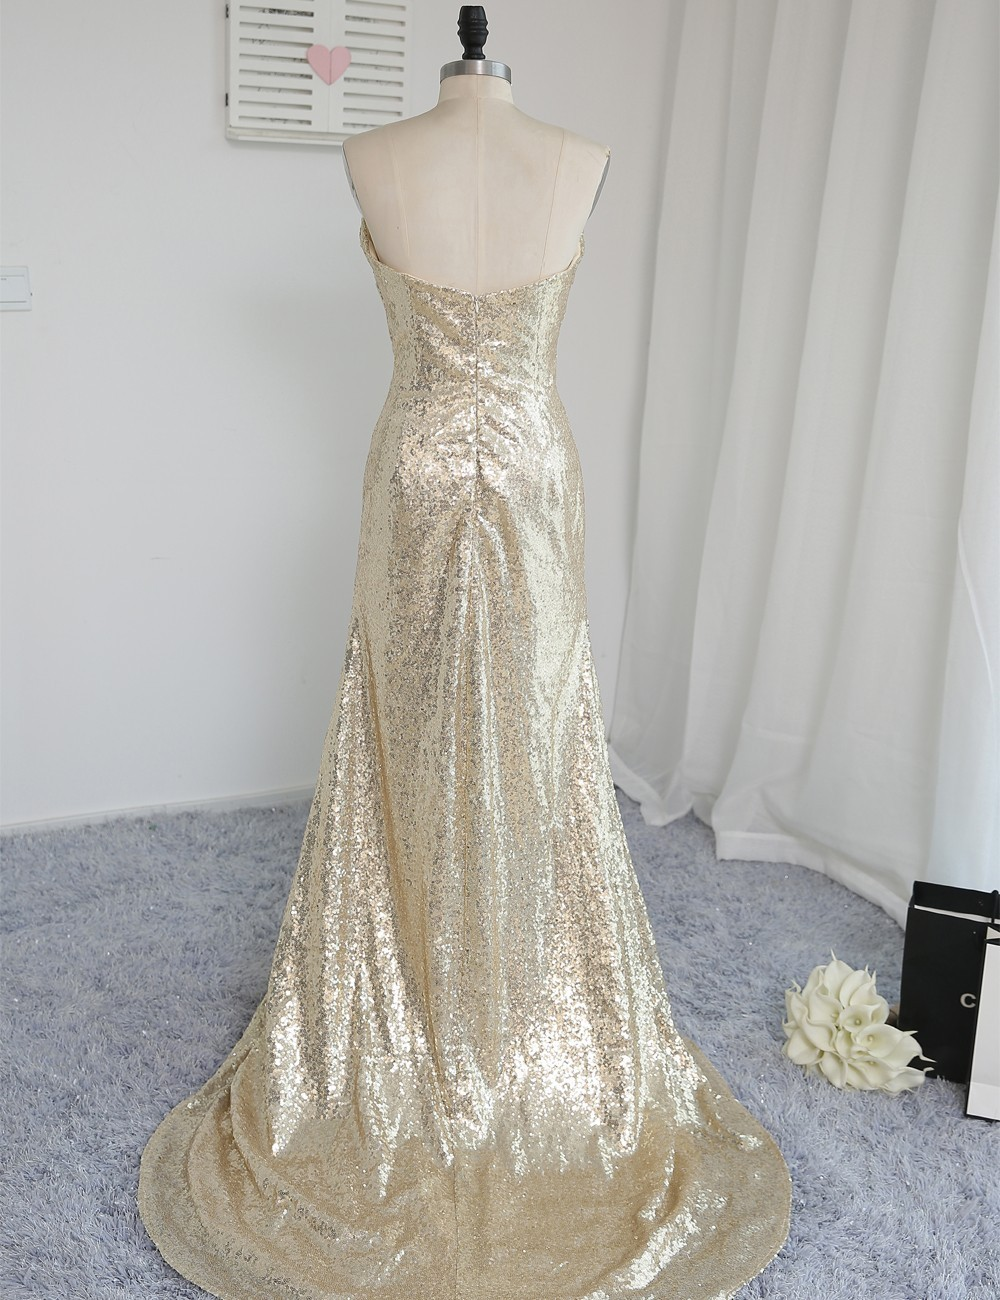 Sweetheart Champagne Sequins Slit Backless Mermaid Wedding Party Bridesmaid Dress